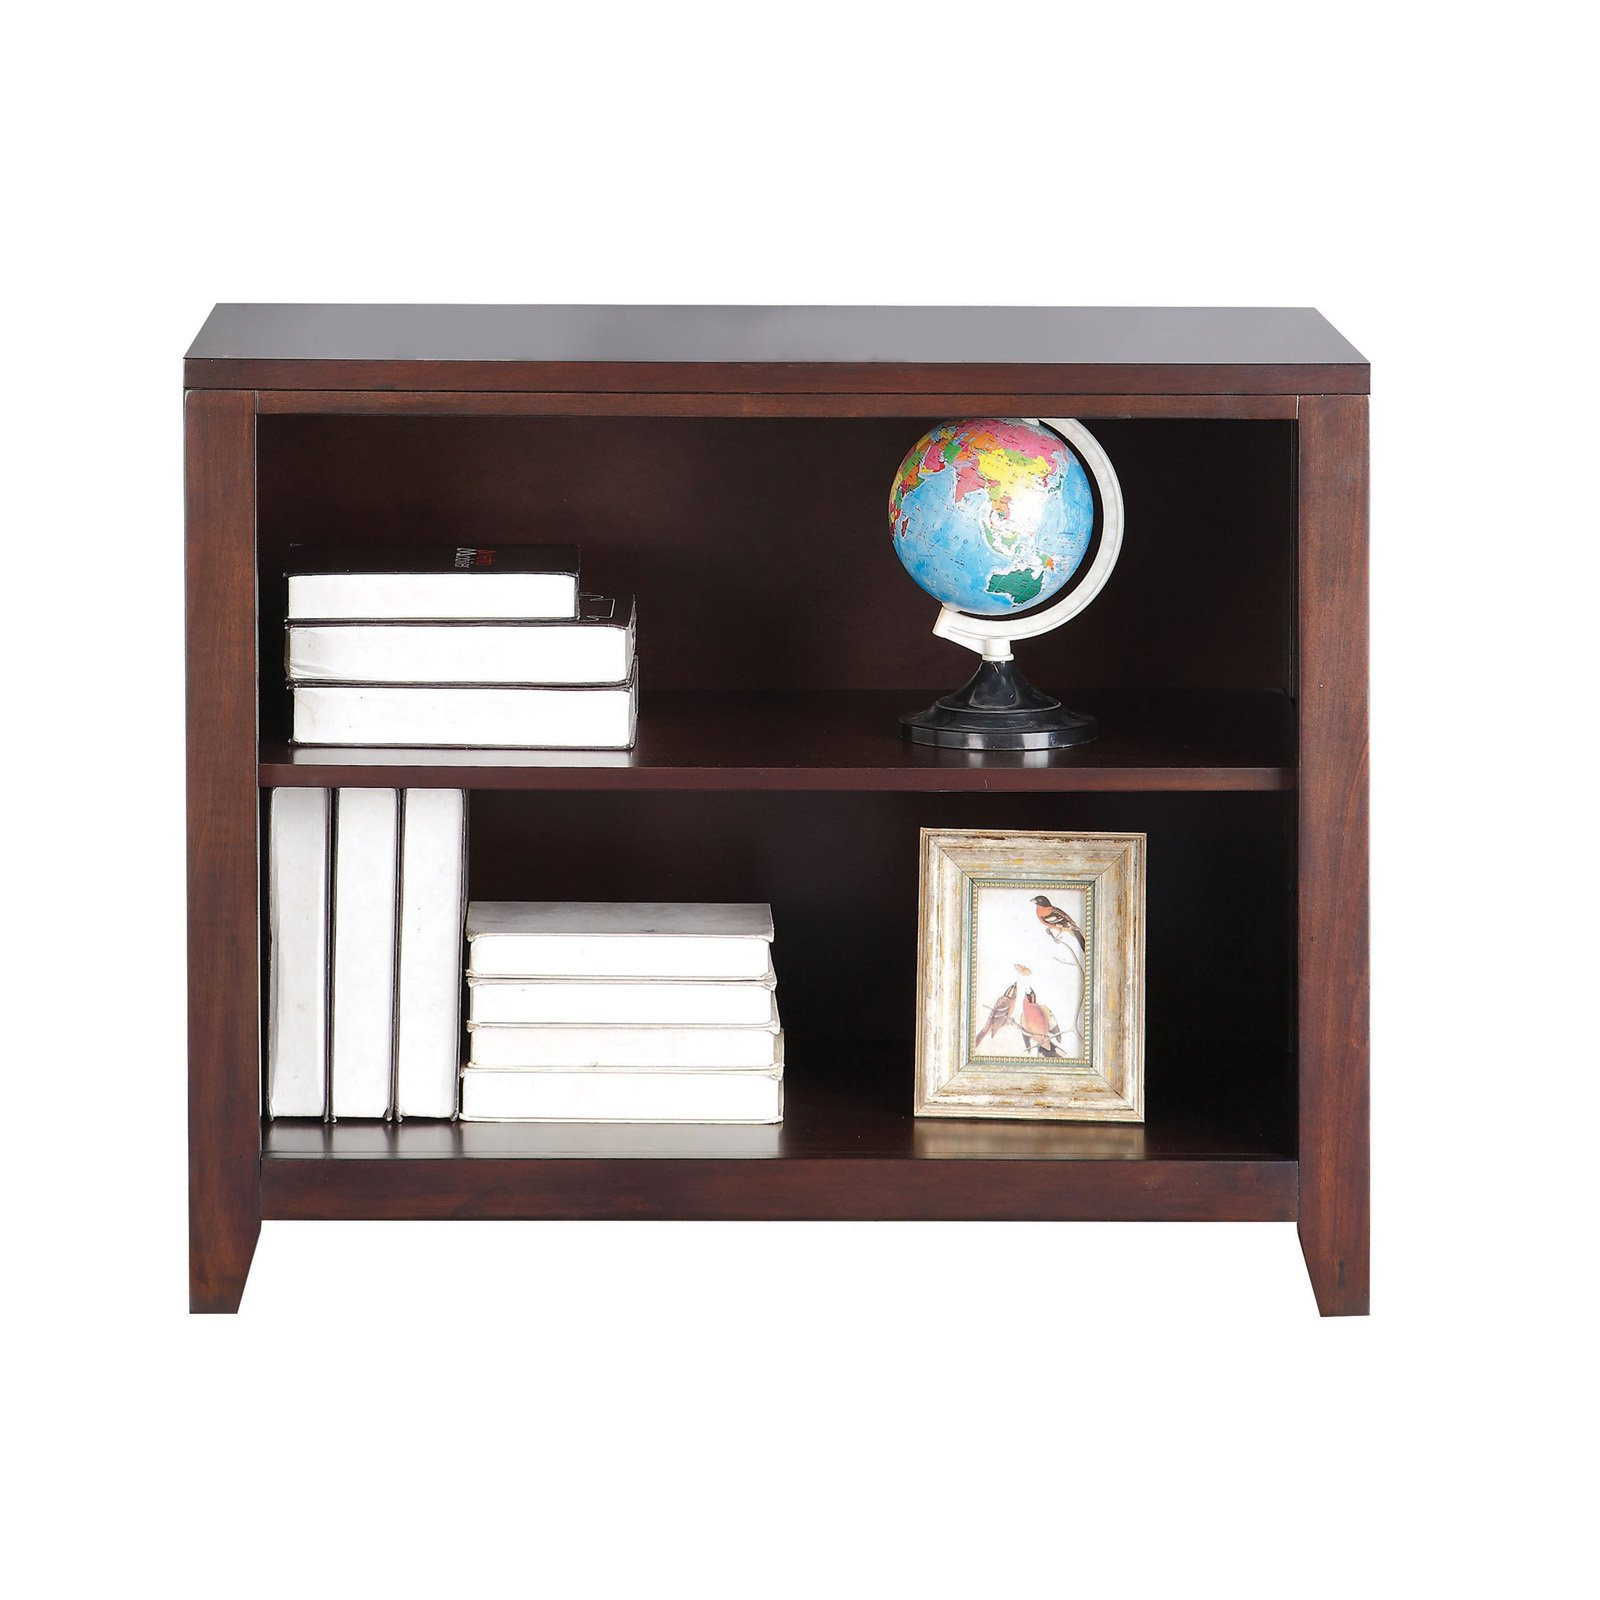 Simple Looking Wooden Bookcase, Espresso Brown